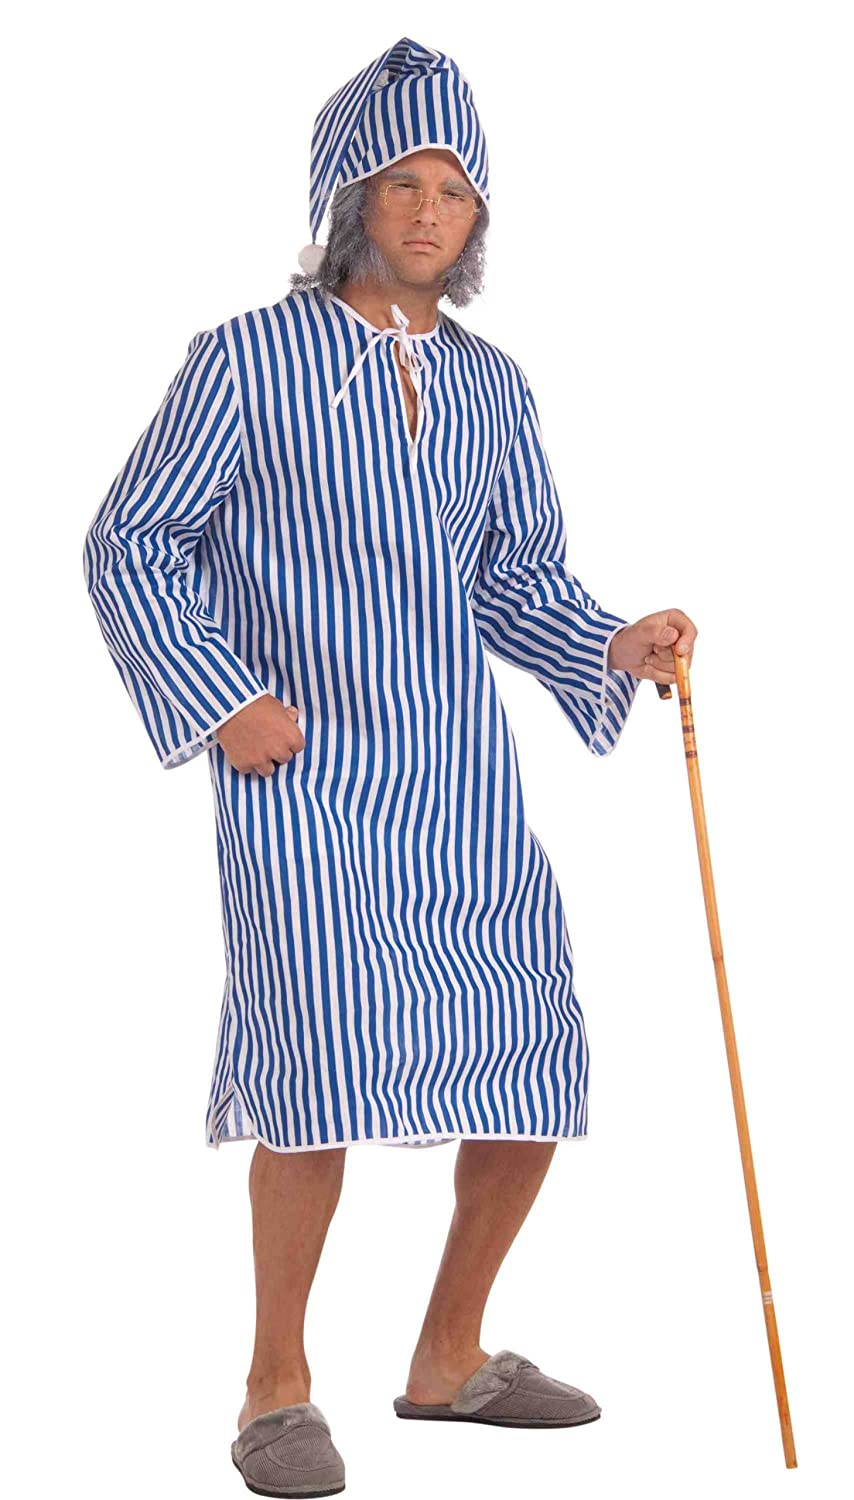 Forum Novelties Men's Scrooge Costume Nightshirt, Blue/White, Standard Forum Novelties Costumes 67642